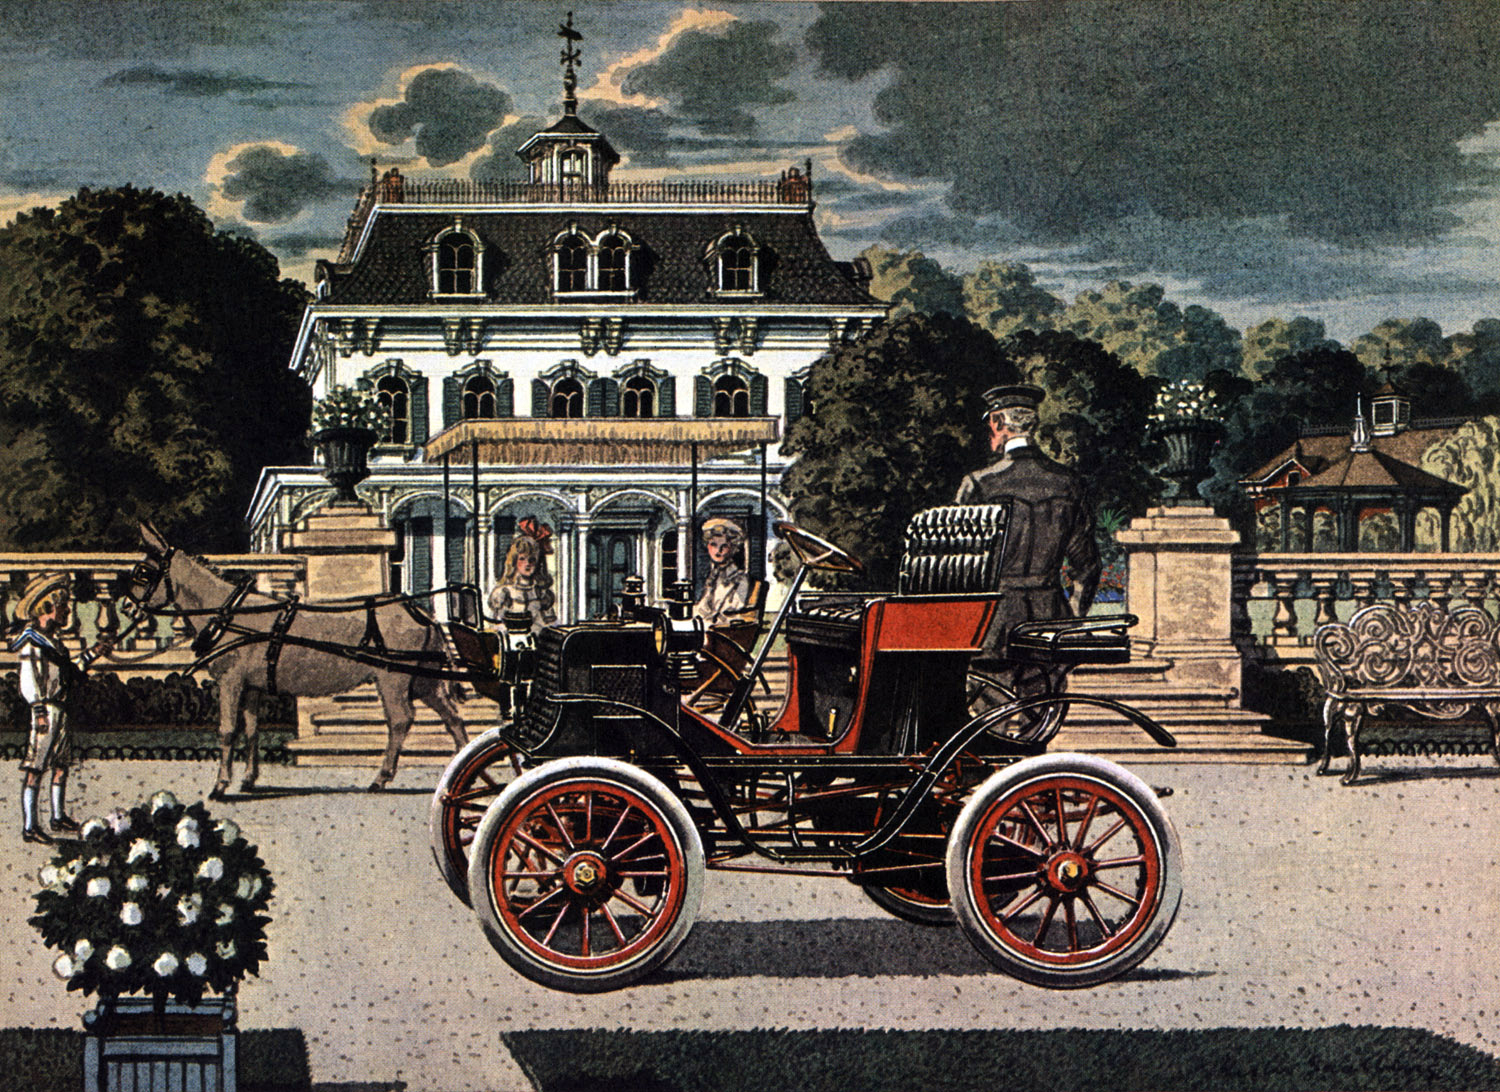 1901 Columbia - Illustrated by Leslie Saalburg